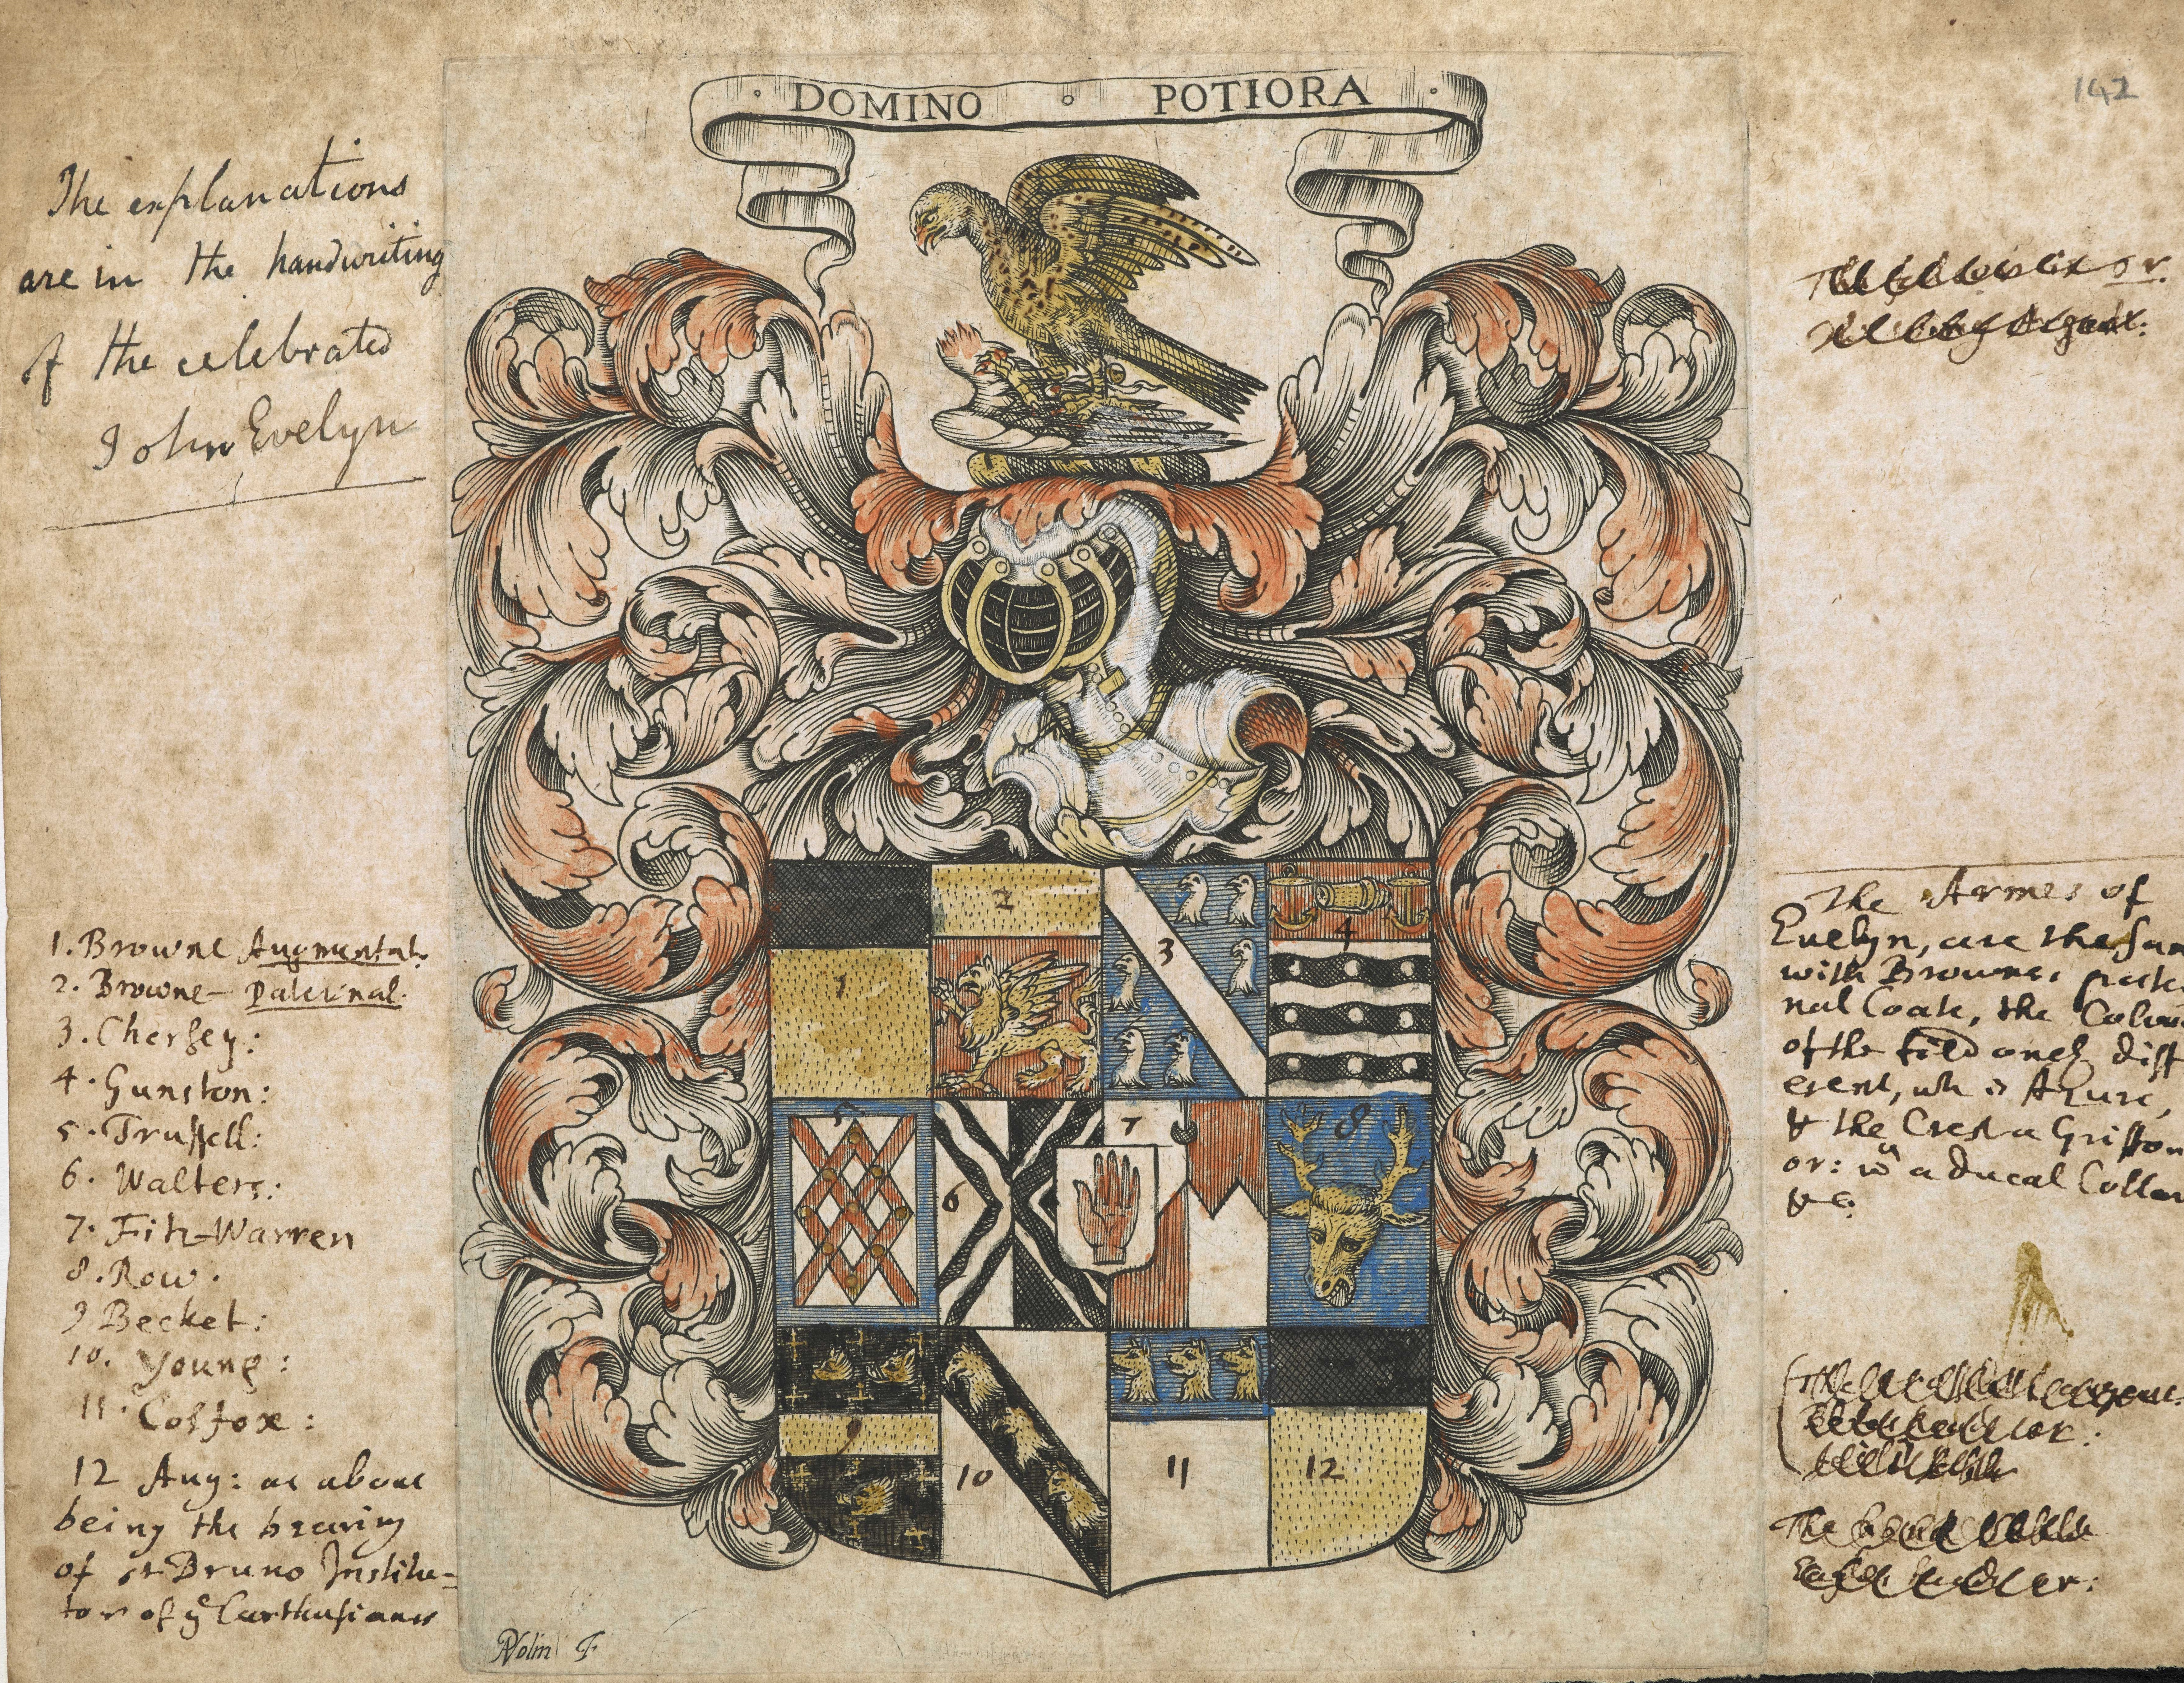 Evelyn family Arms, with manuscript notes by John Evelyn. Add MS 78351, f 142r.